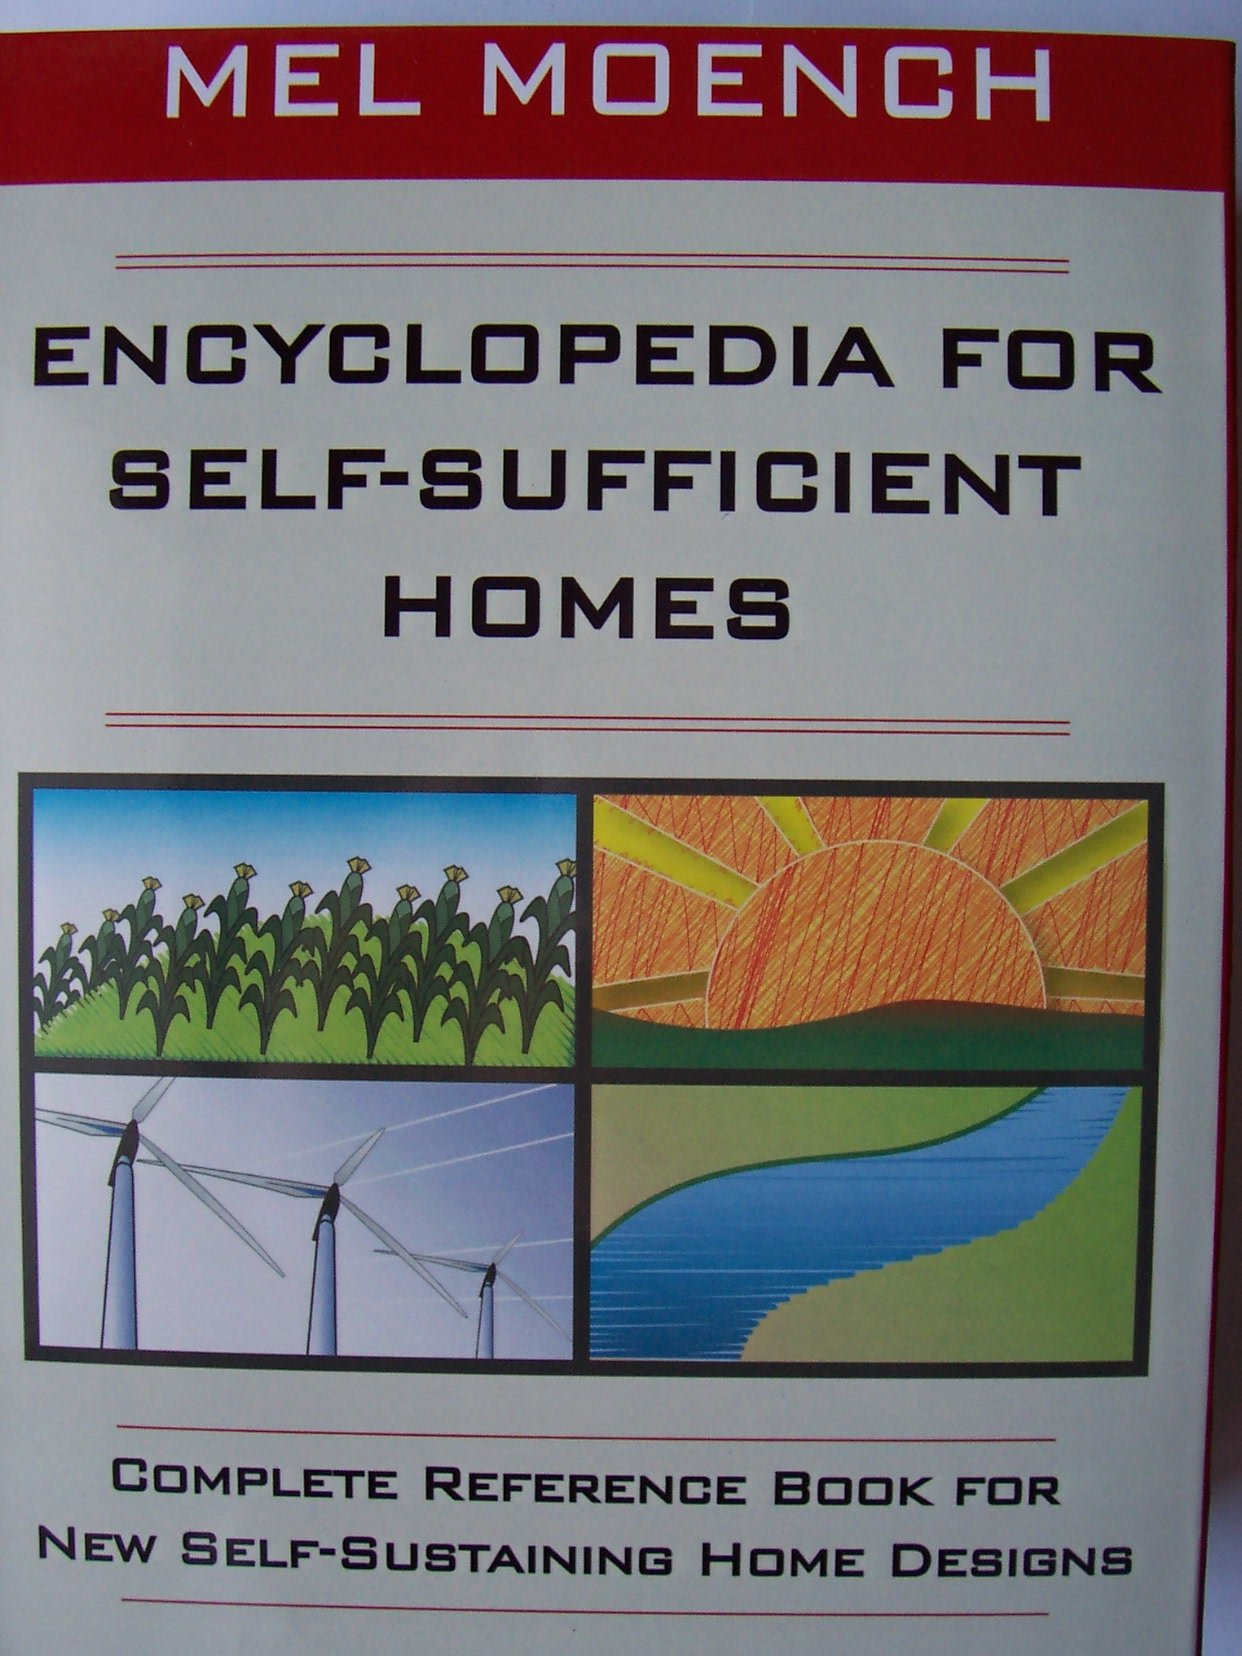 Amazon Com Encyclopedia For Self Sufficient Homes A Complete Reference Book For New Self Sustaining Home Designs Ebook Moench Mel Kindle Store